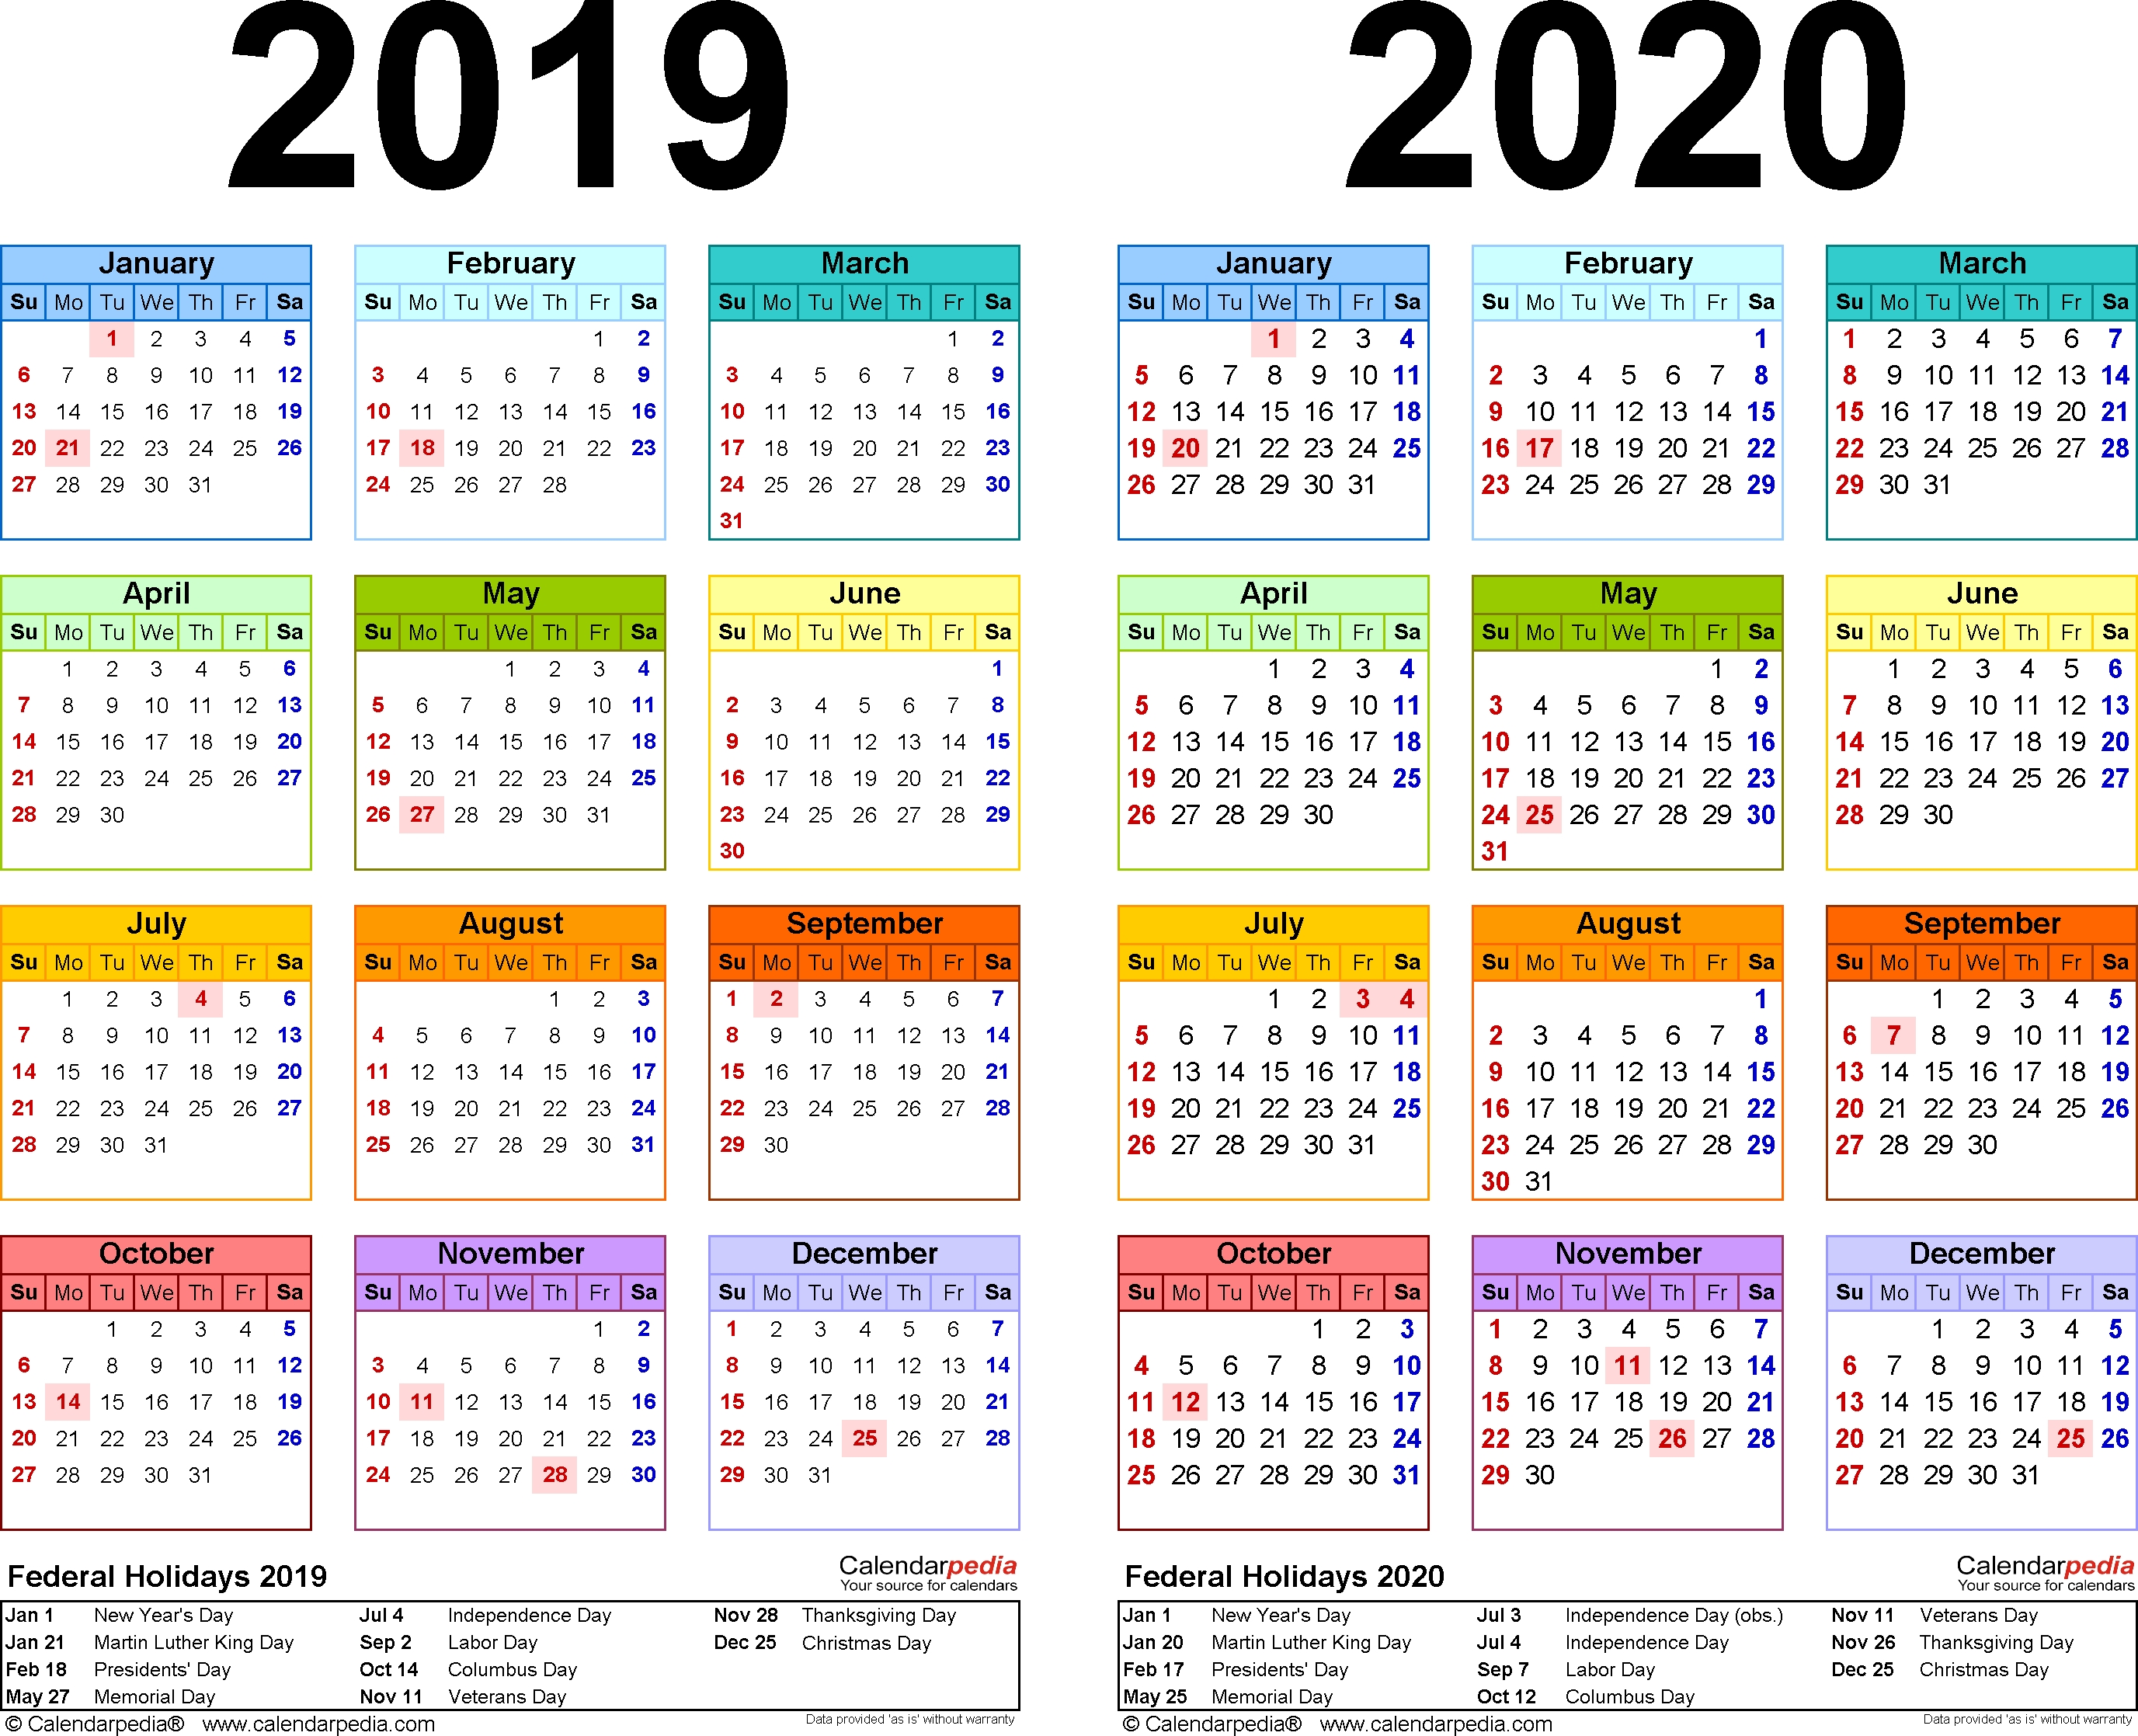 2019-2020 Calendar - Free Printable Two-Year Pdf Calendars pertaining to Free Color Printable 2019 2020 Calendar